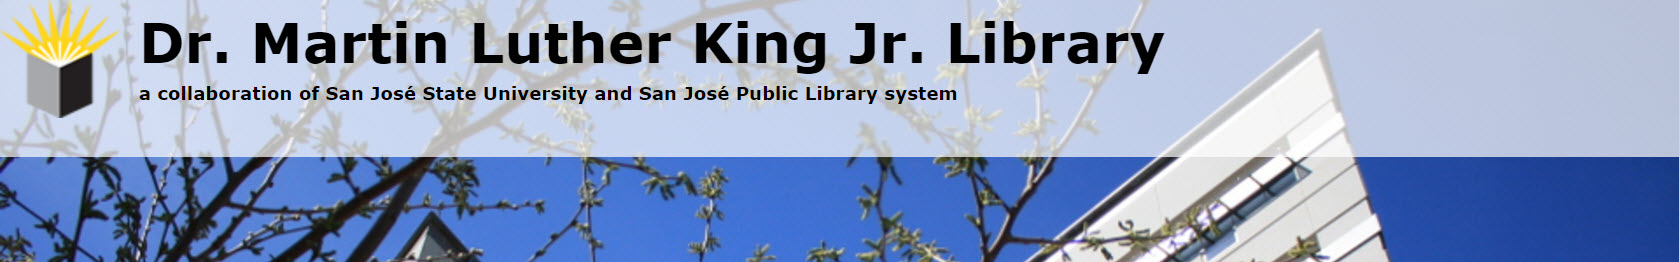 Dr. Martin Luther King Jr. Library  Library Bookings